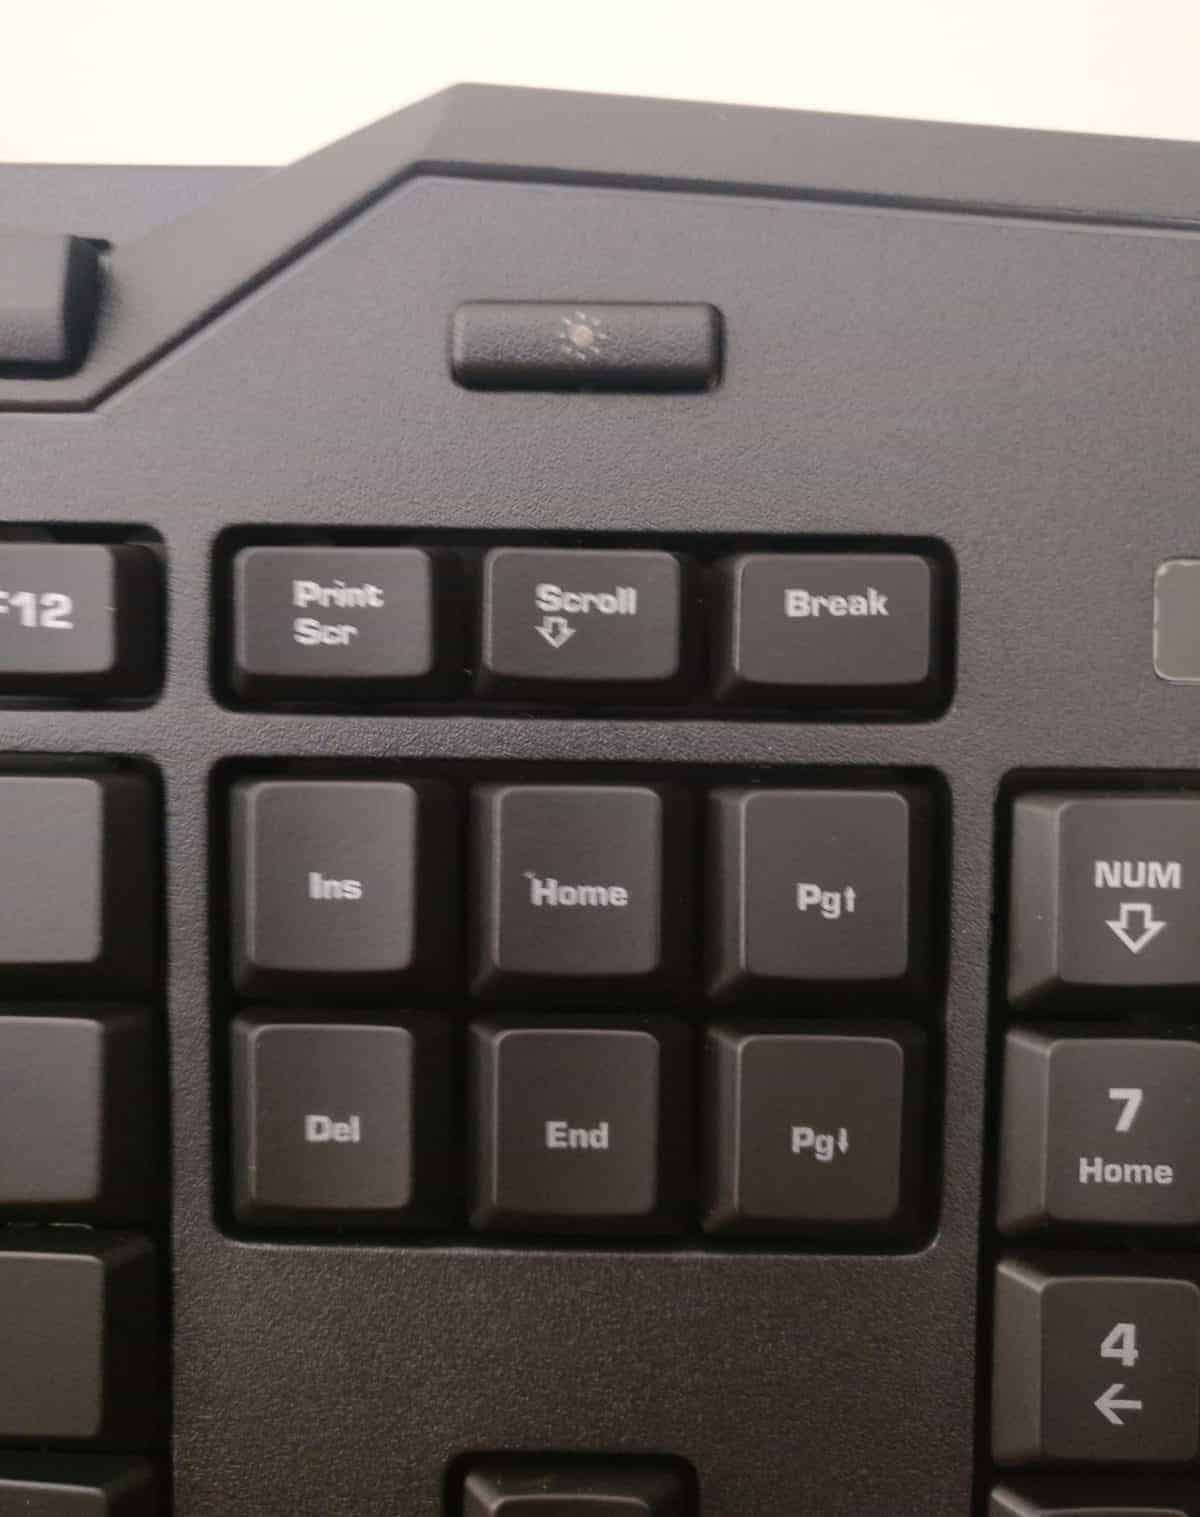 Roccat-Isku-fx-plus-Photos13 Roccat Isku+ Force FX Gaming Keyboard Review